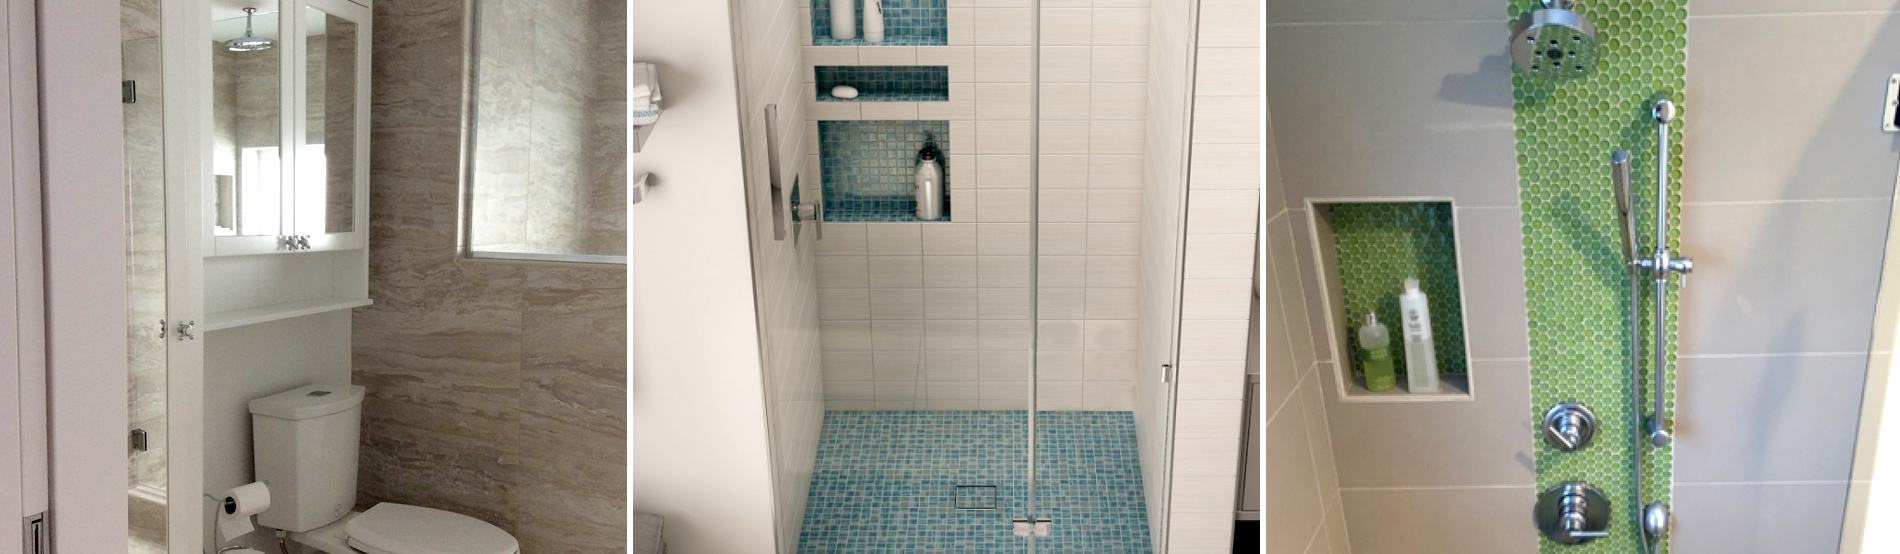 beautiful custom tile work